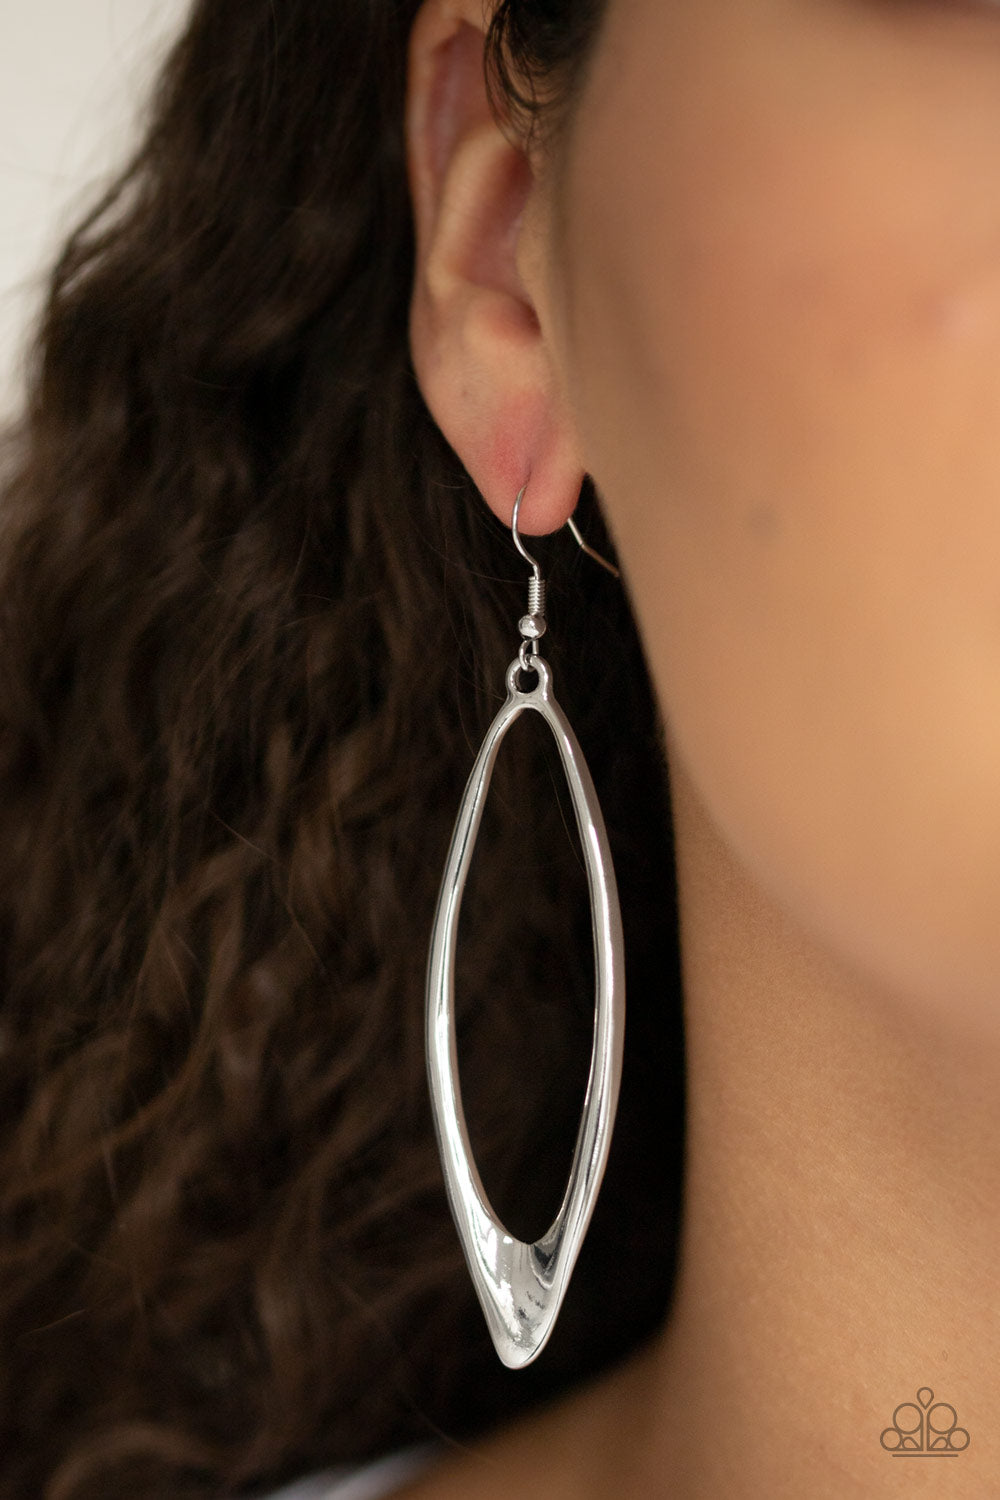 Paparazzi Jewelry & Accessories - Positively Progressive - Silver oval drip Earrings. Bling By Titia